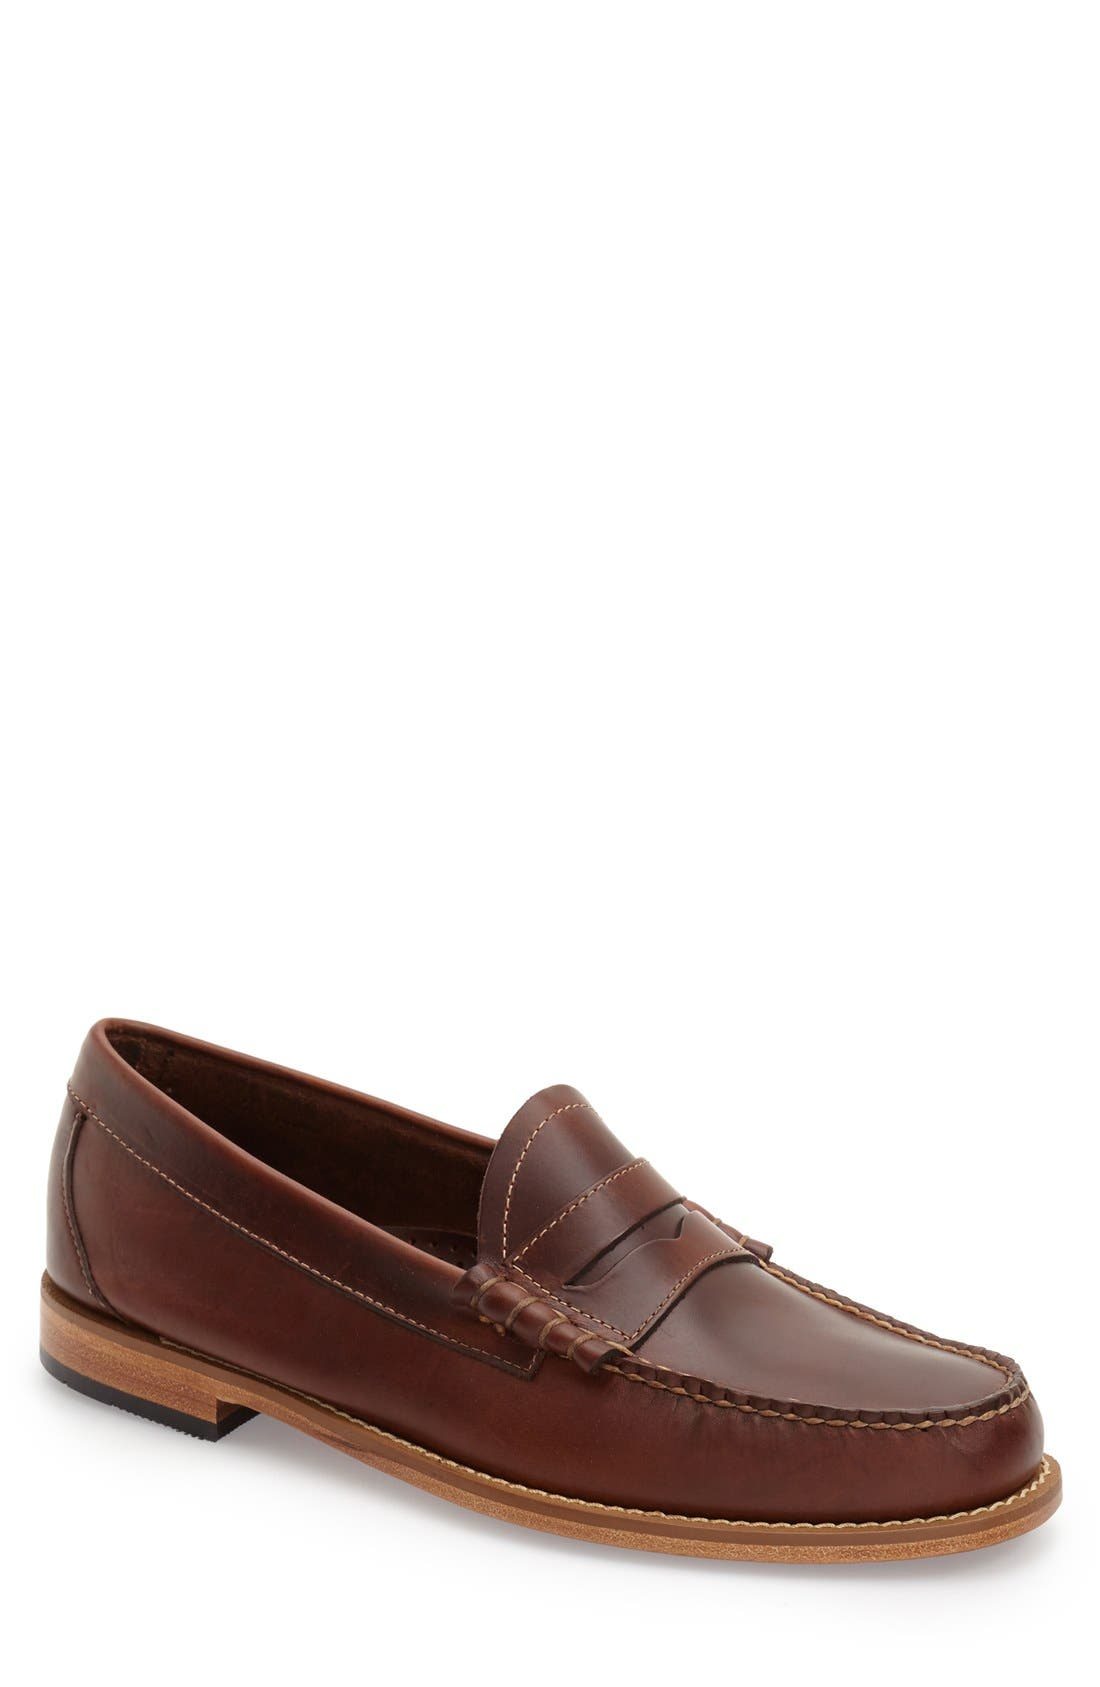 'Larson - Weejuns' Penny Loafer,                         Main,                         color, Seahorse Leather